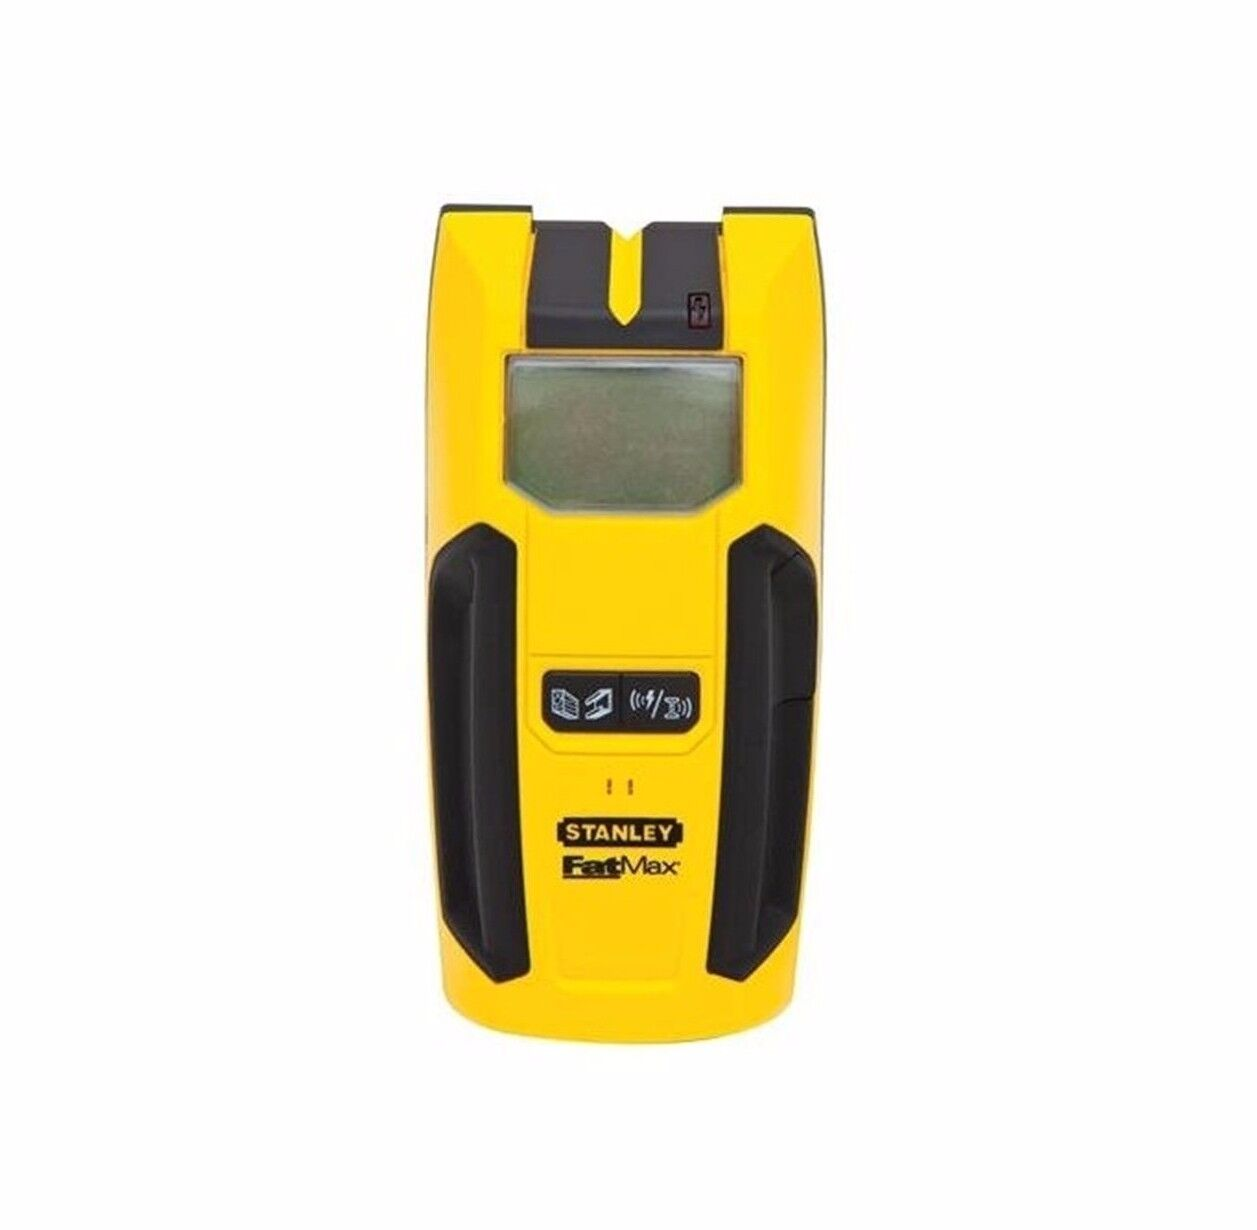 Stanley FatMax STUD SENSOR FINDER 300 w  Deep Metal Scan Auto-calibration